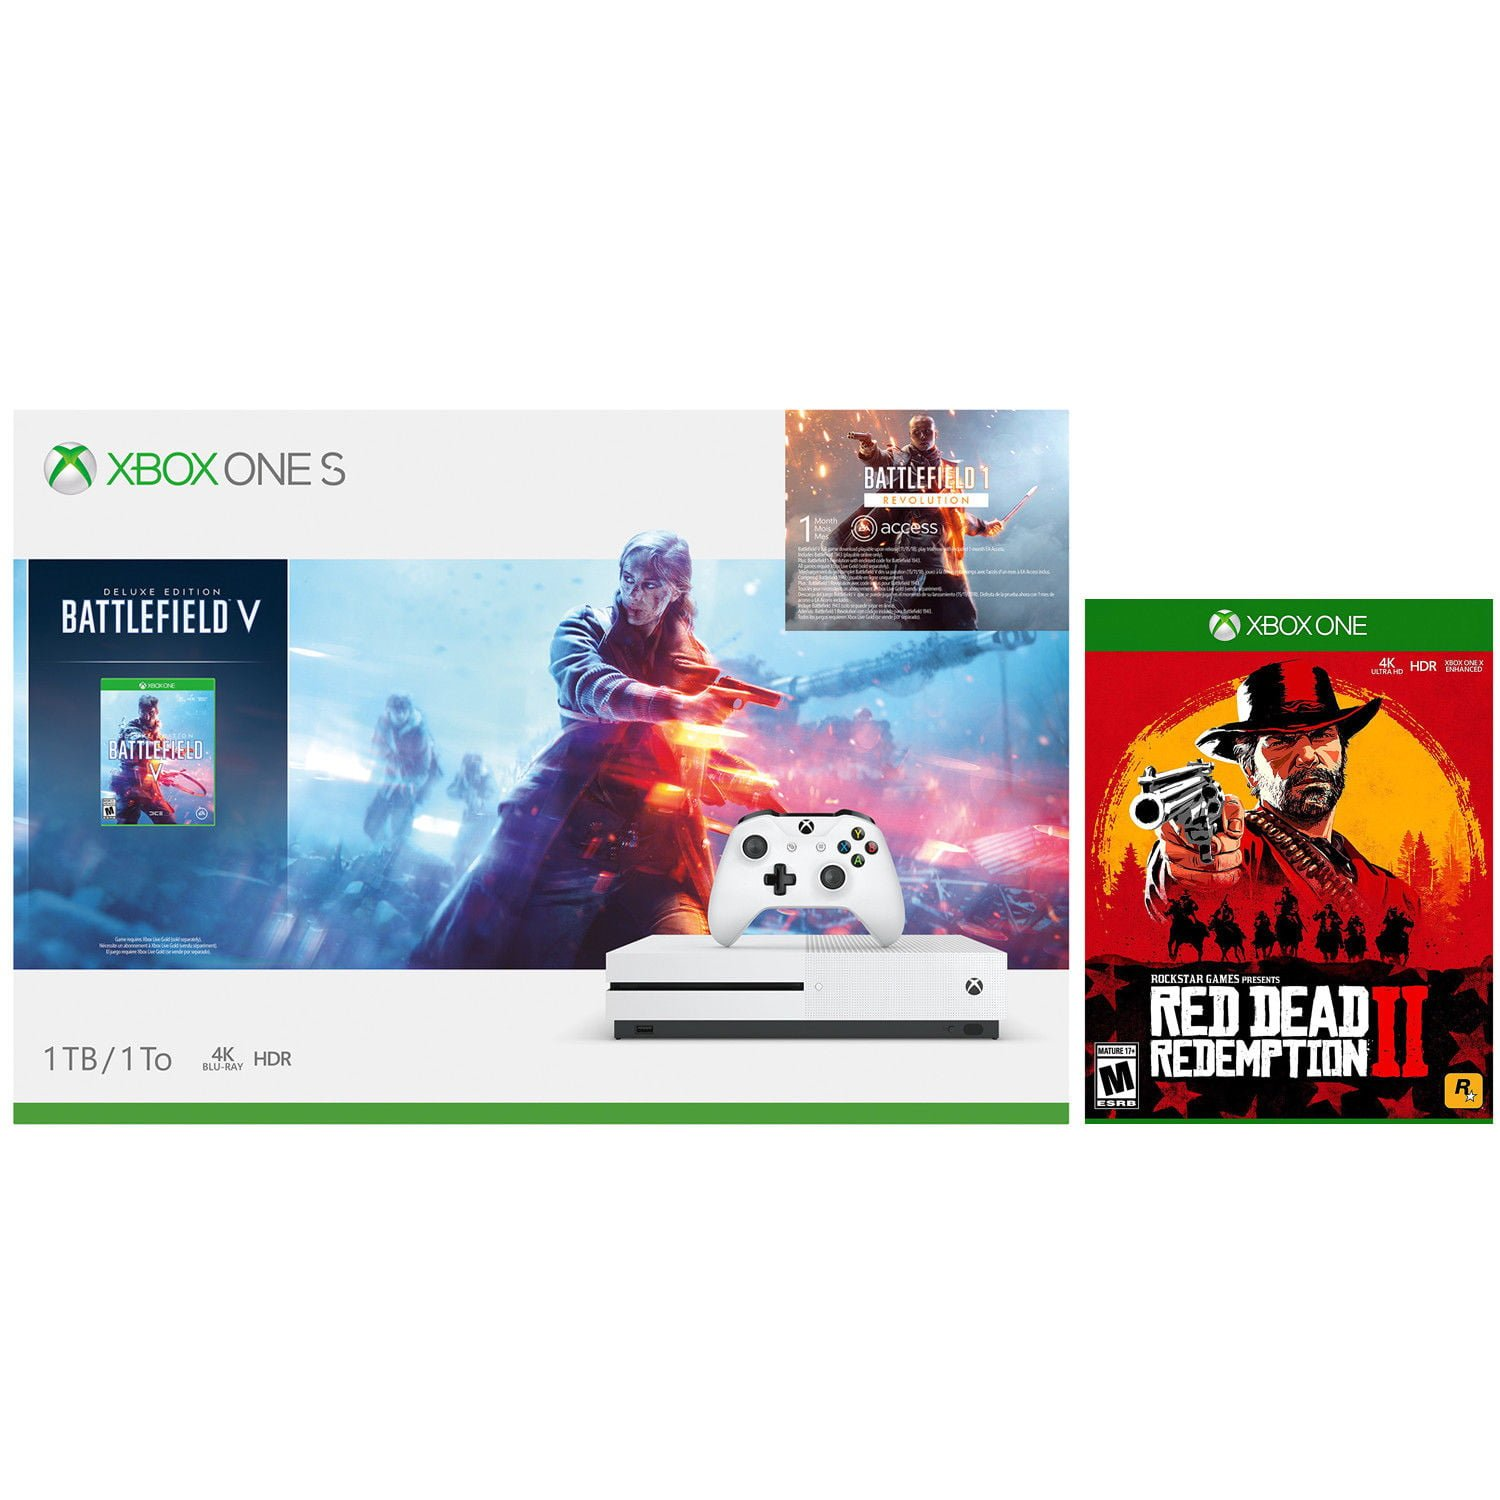 olx red dead redemption 2 game guide bundle